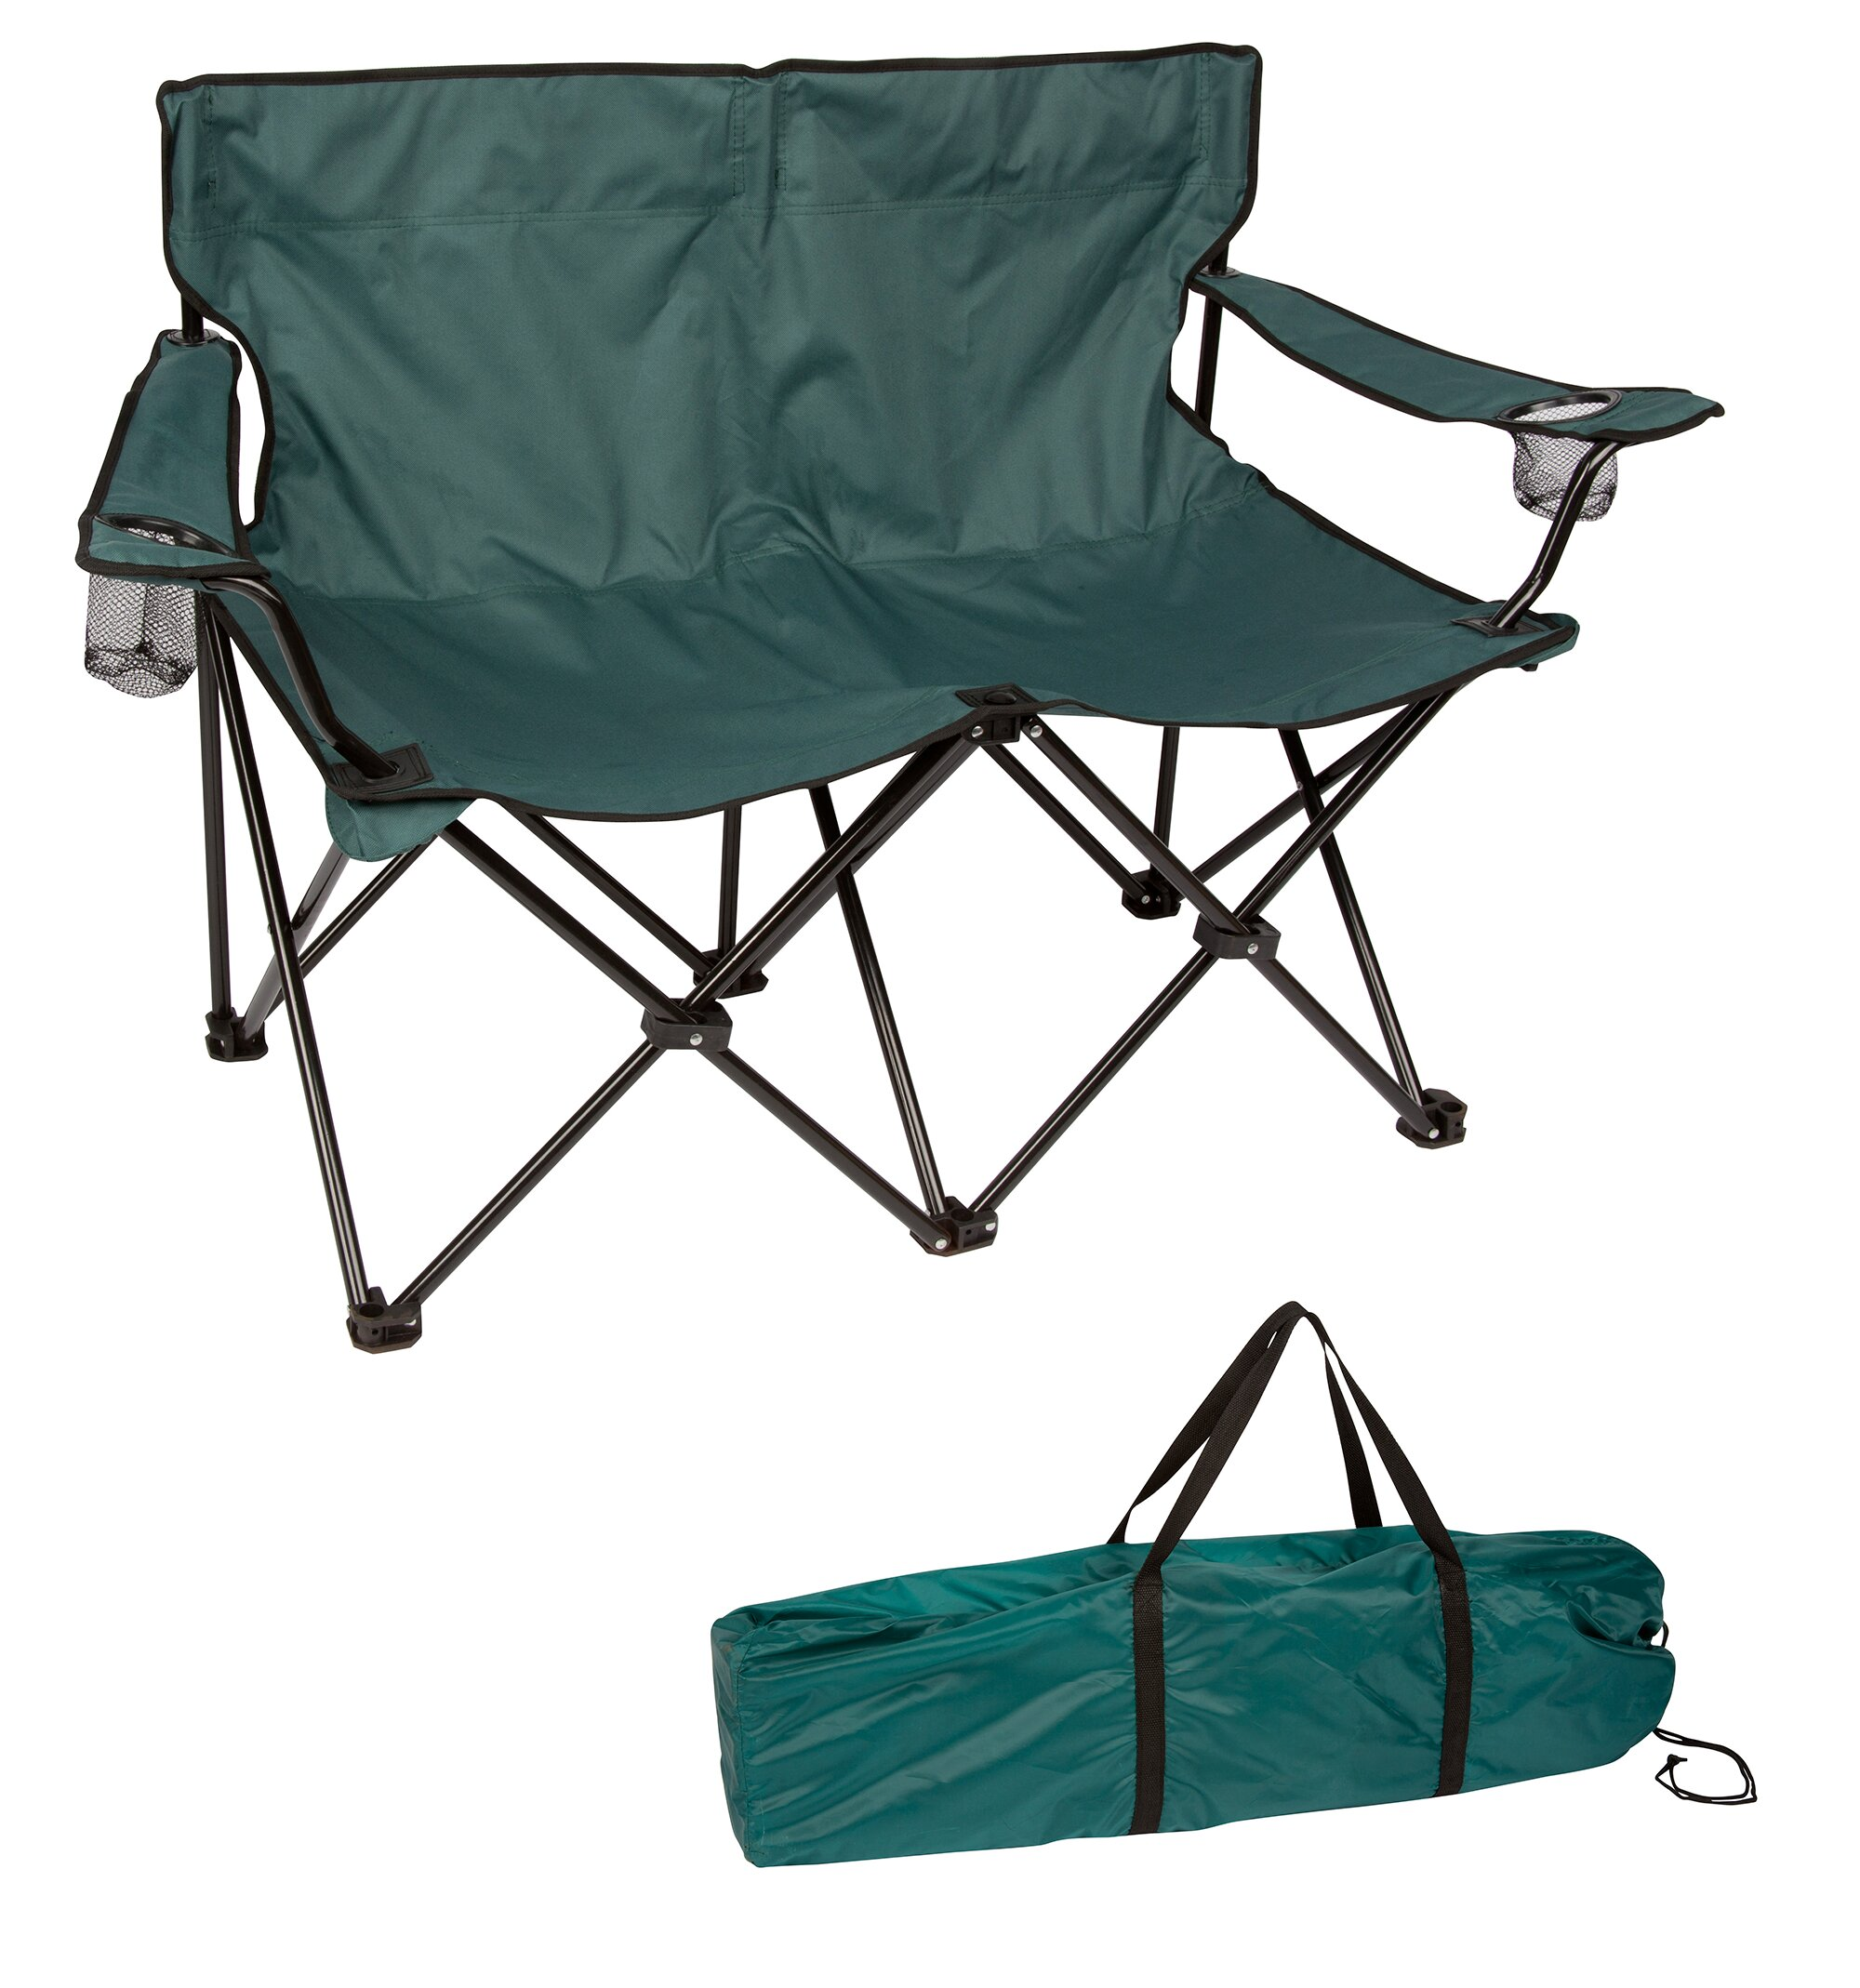 Portable Folding Camping Chair Heavy Duty Oversized LoveSeat Bench Lounge Seat